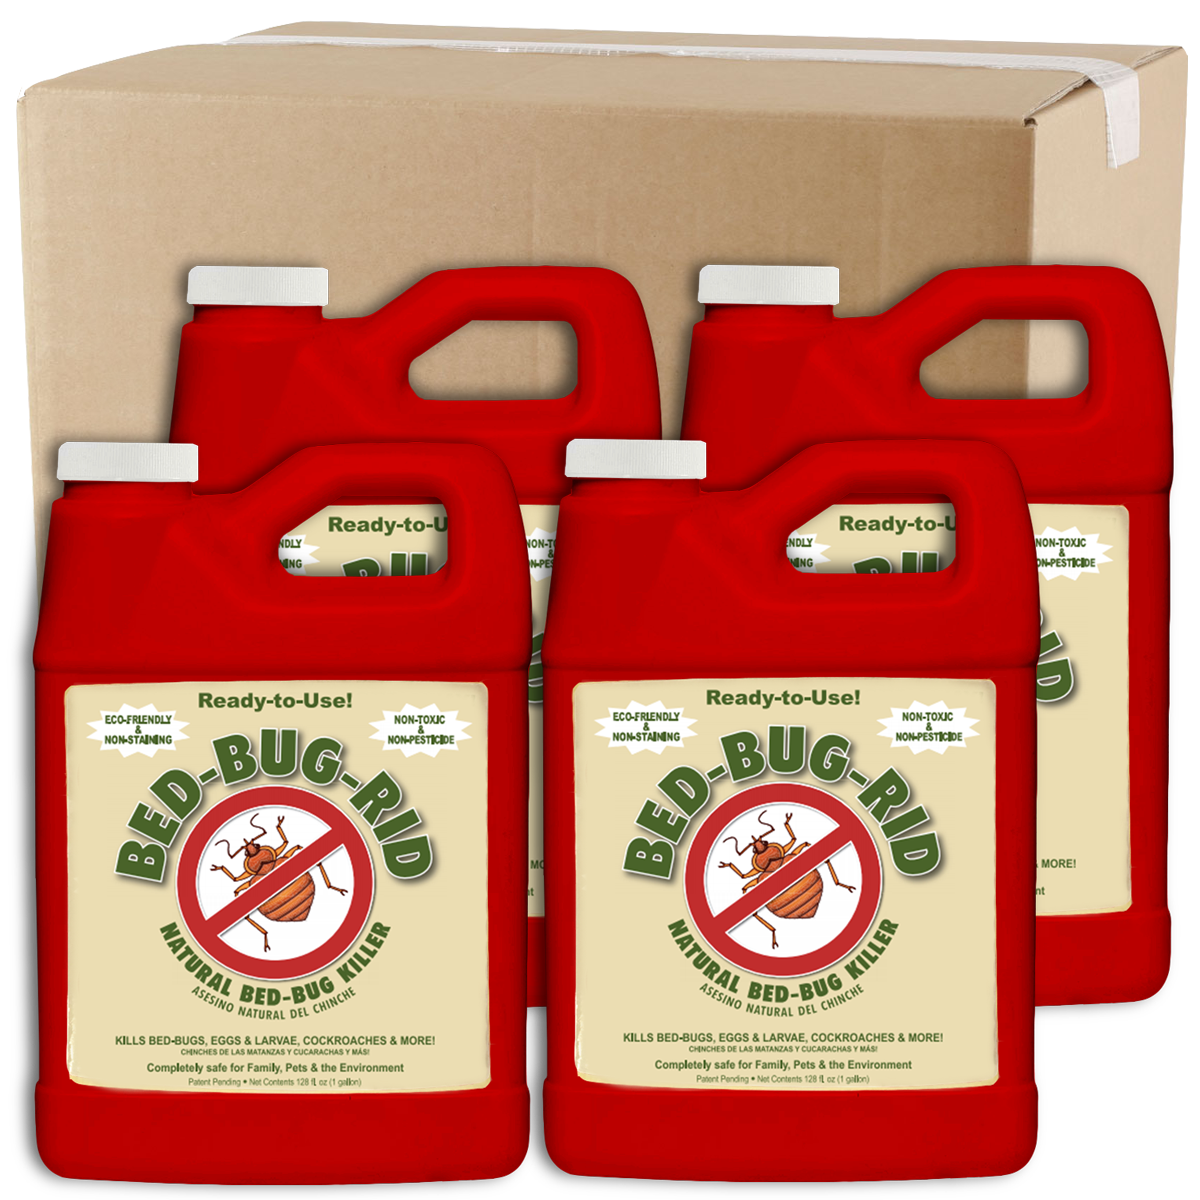 Wholesale Bed-Bug-Rid 1 Gallon Refill Jug Case